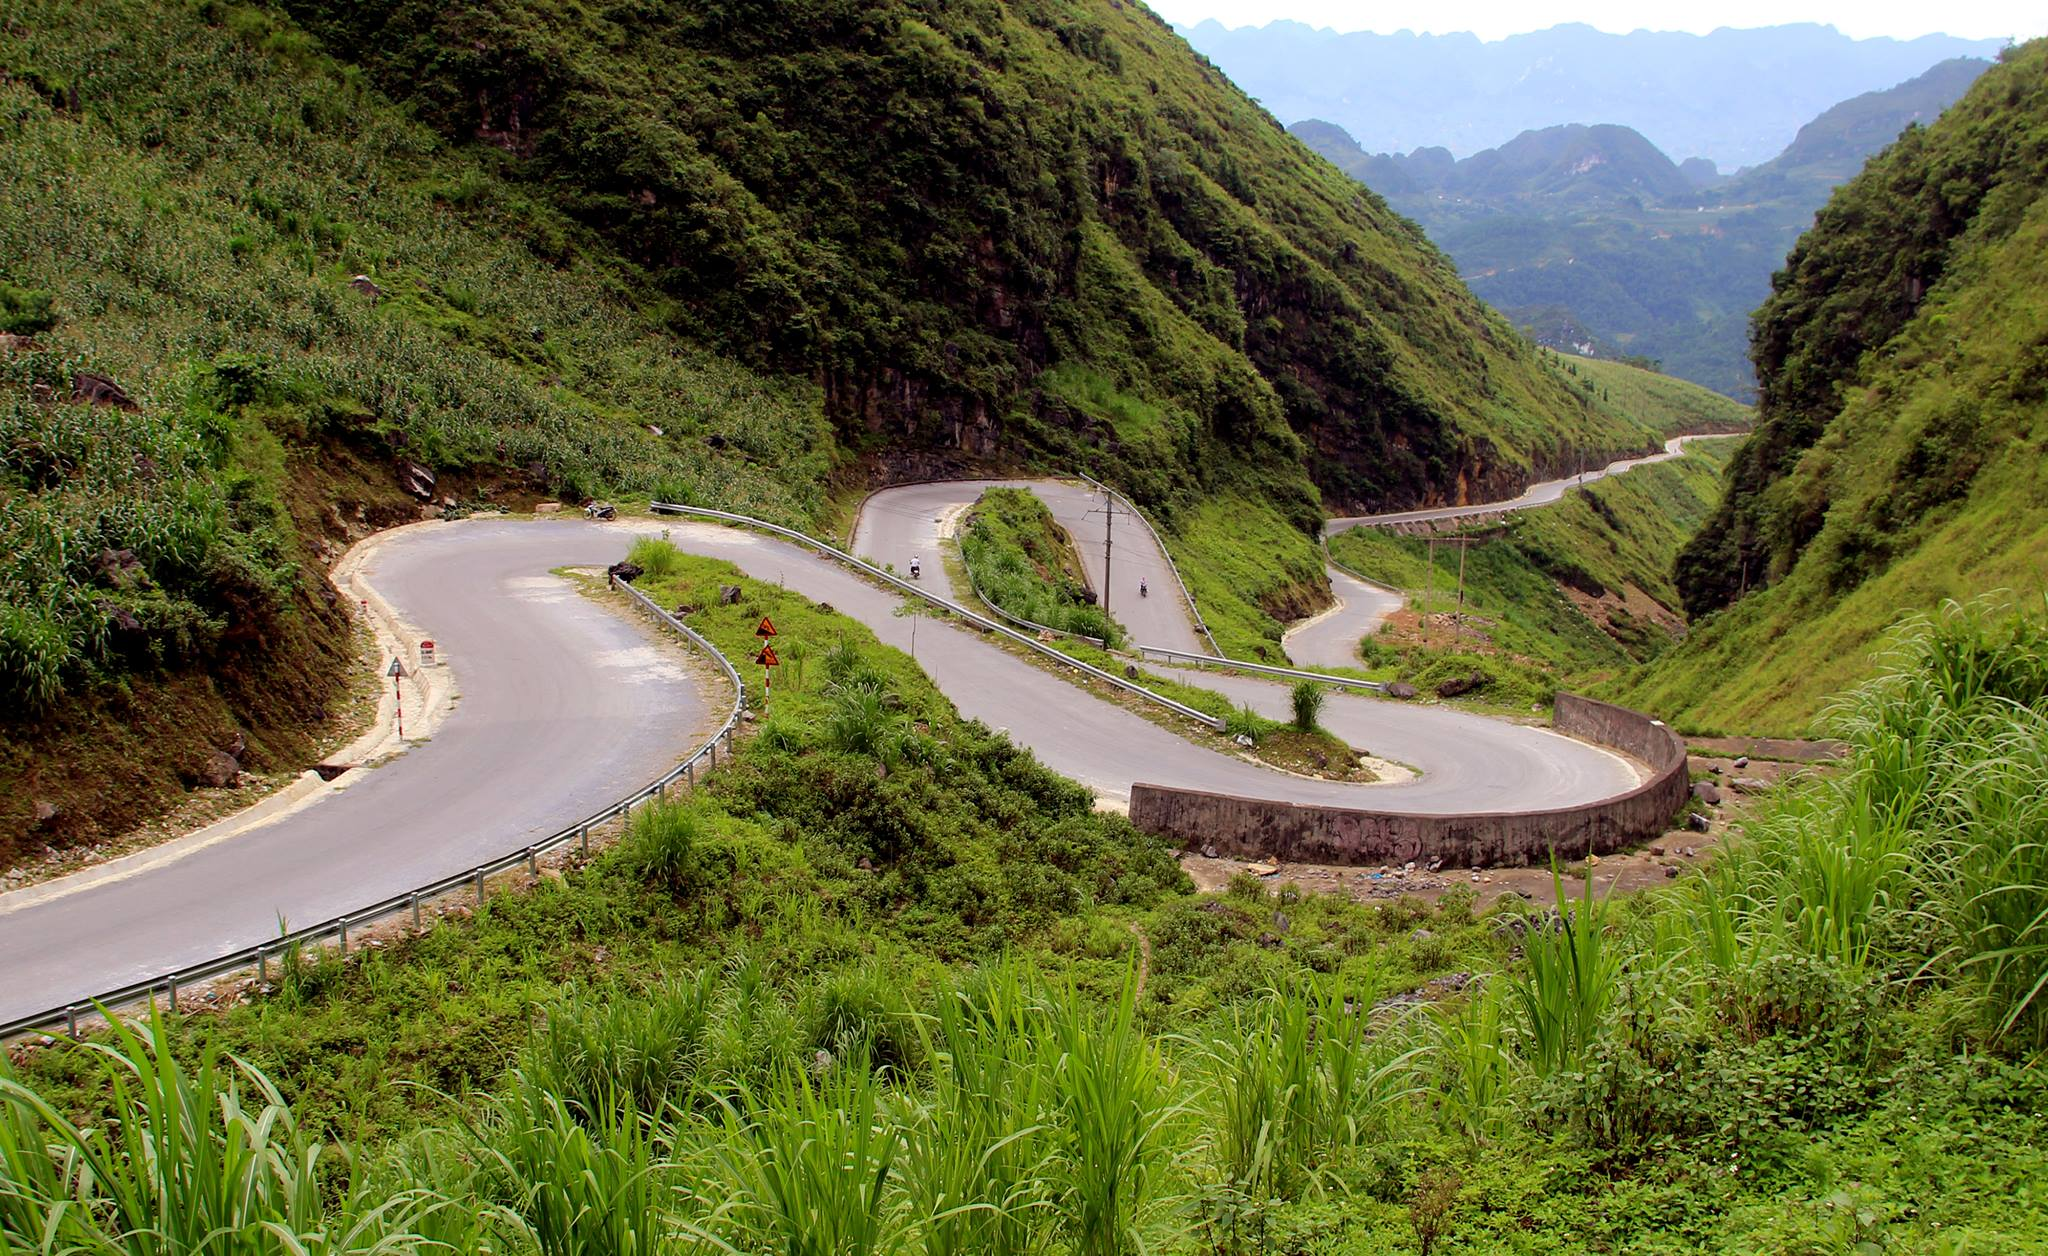 WHY SHOULD YOU CHOOSE MOTORBIKE TO TRAVEL IN VIETNAM